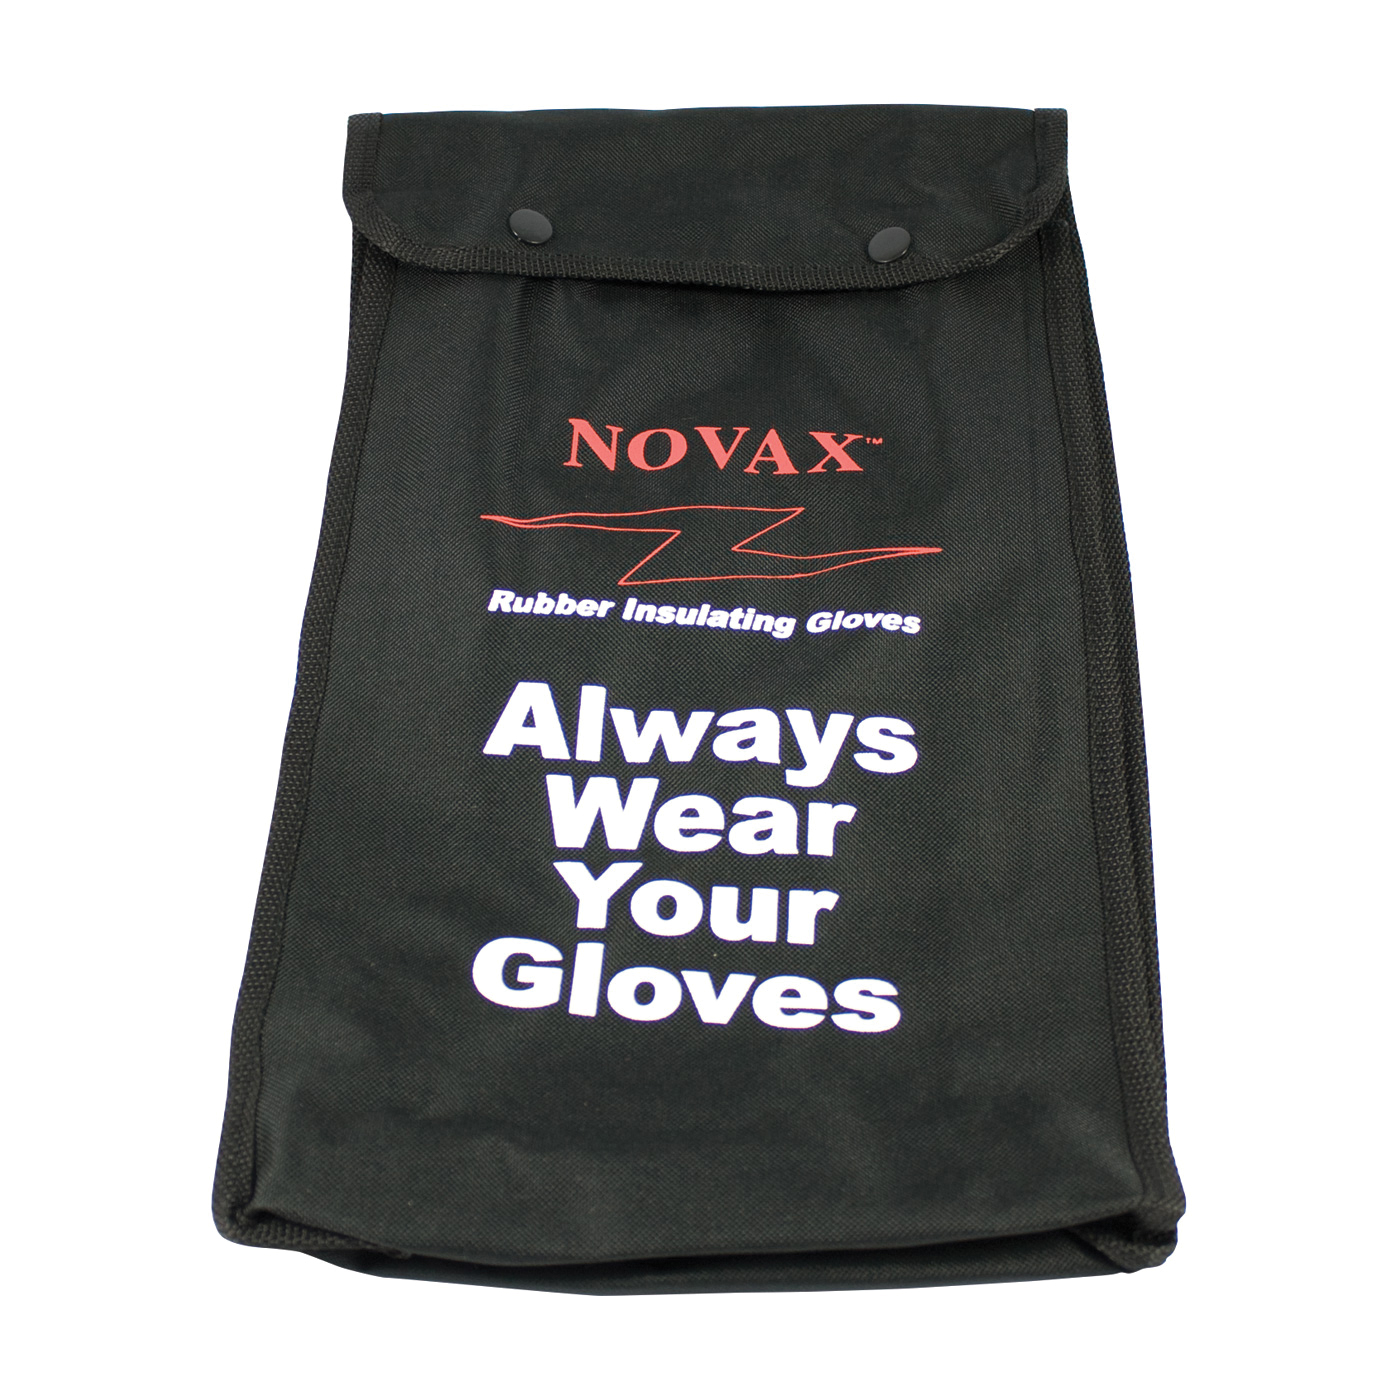 Novax® 148-2136 Protective Bag, Plastic Hook, Snap Closure, For Use With Novax Rubber Insulating Gloves, Nylon, Black with Red/White Lettering